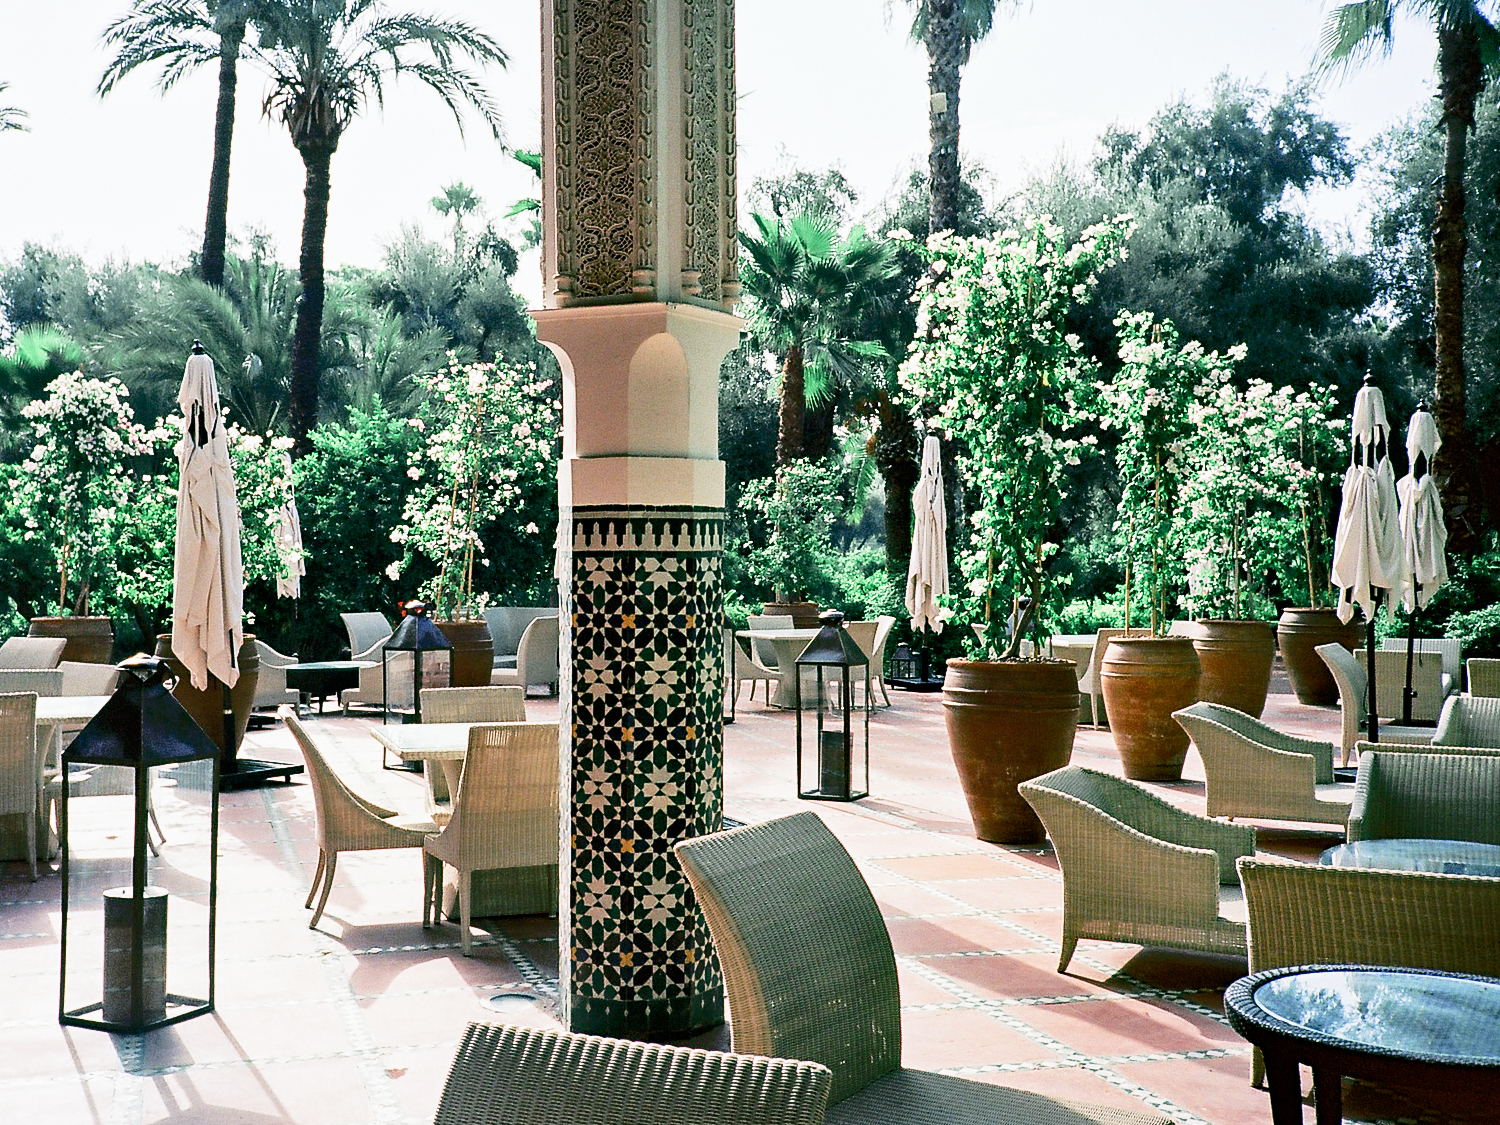 clinique-marrakech-analog-anna-ponsa-28